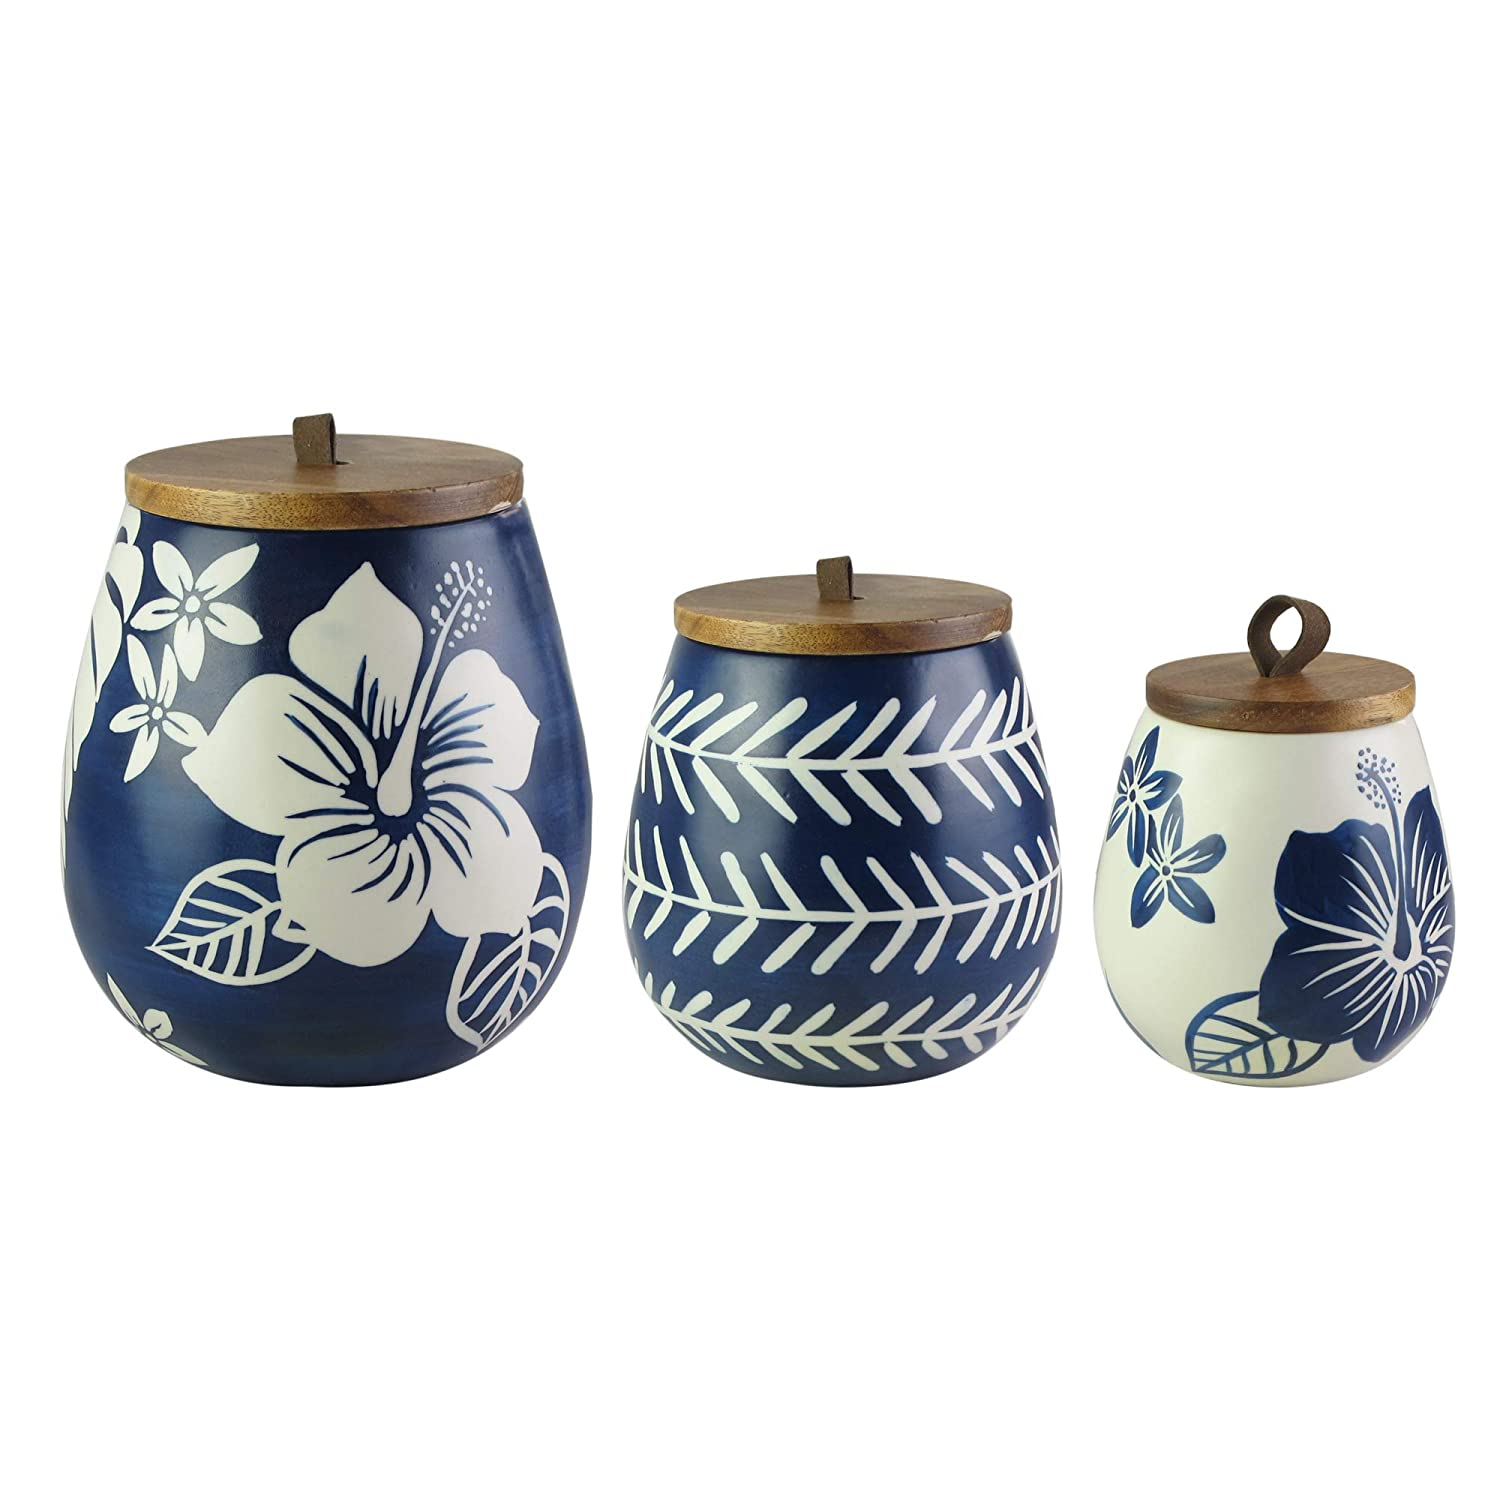 American Atelier Ceramic Canister Set with Wooden Lids Jar Container for Kitchen Food Storage Floral Blue/White 3 pieces Set 7120-CAN-RB